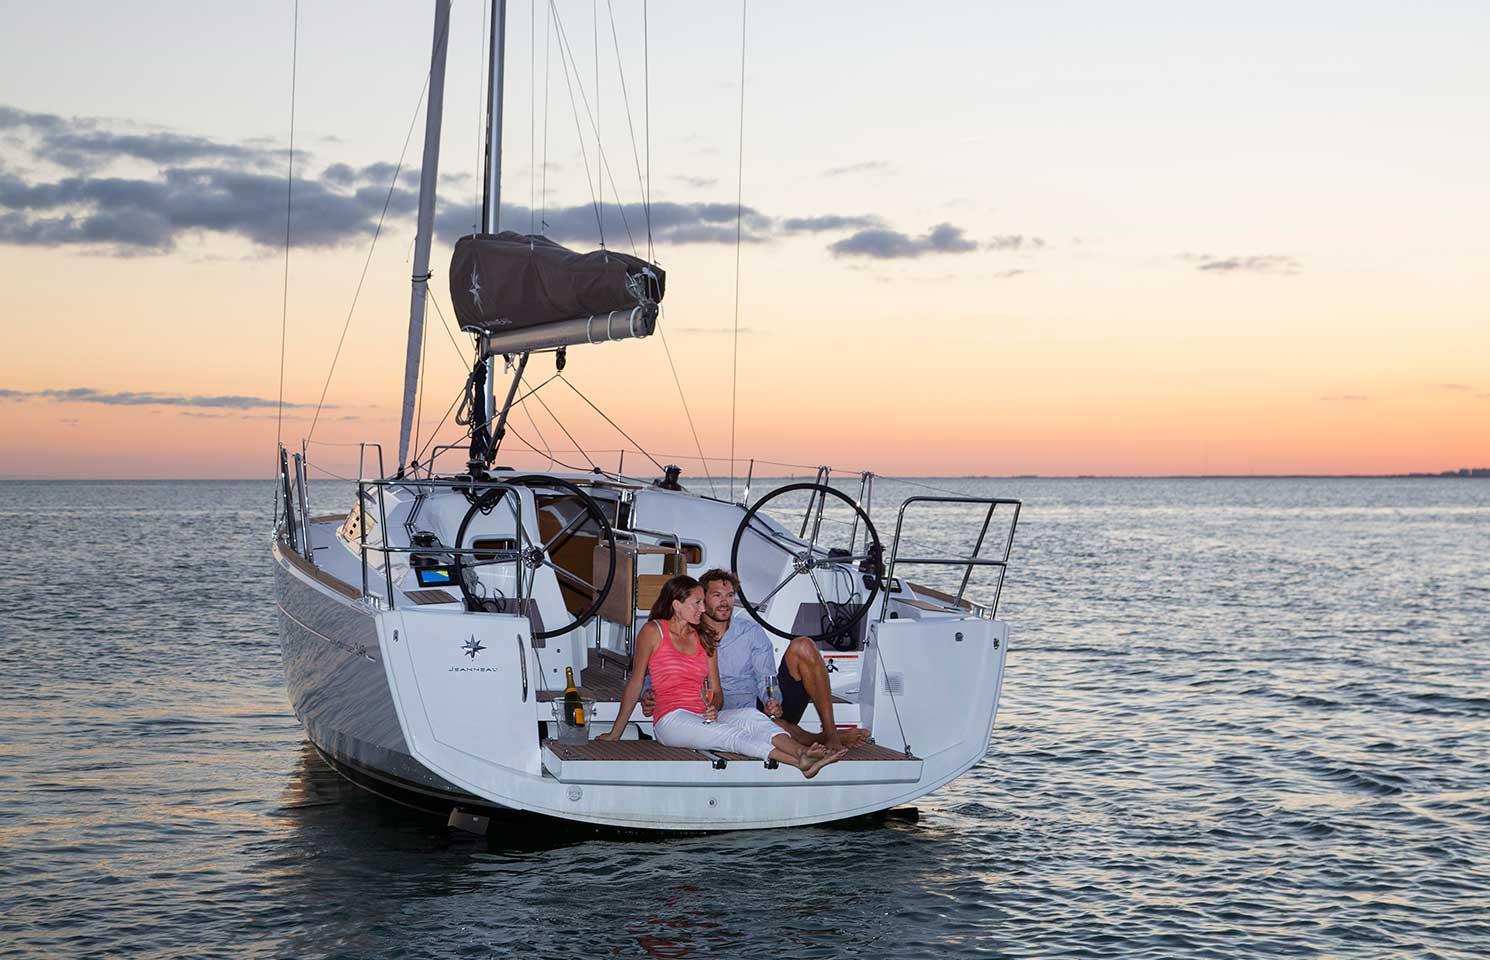 Jeanneau Sun Odyssey 349 , Sailing Yacht Charters in Cyprus with Latchi Charters Cyprus